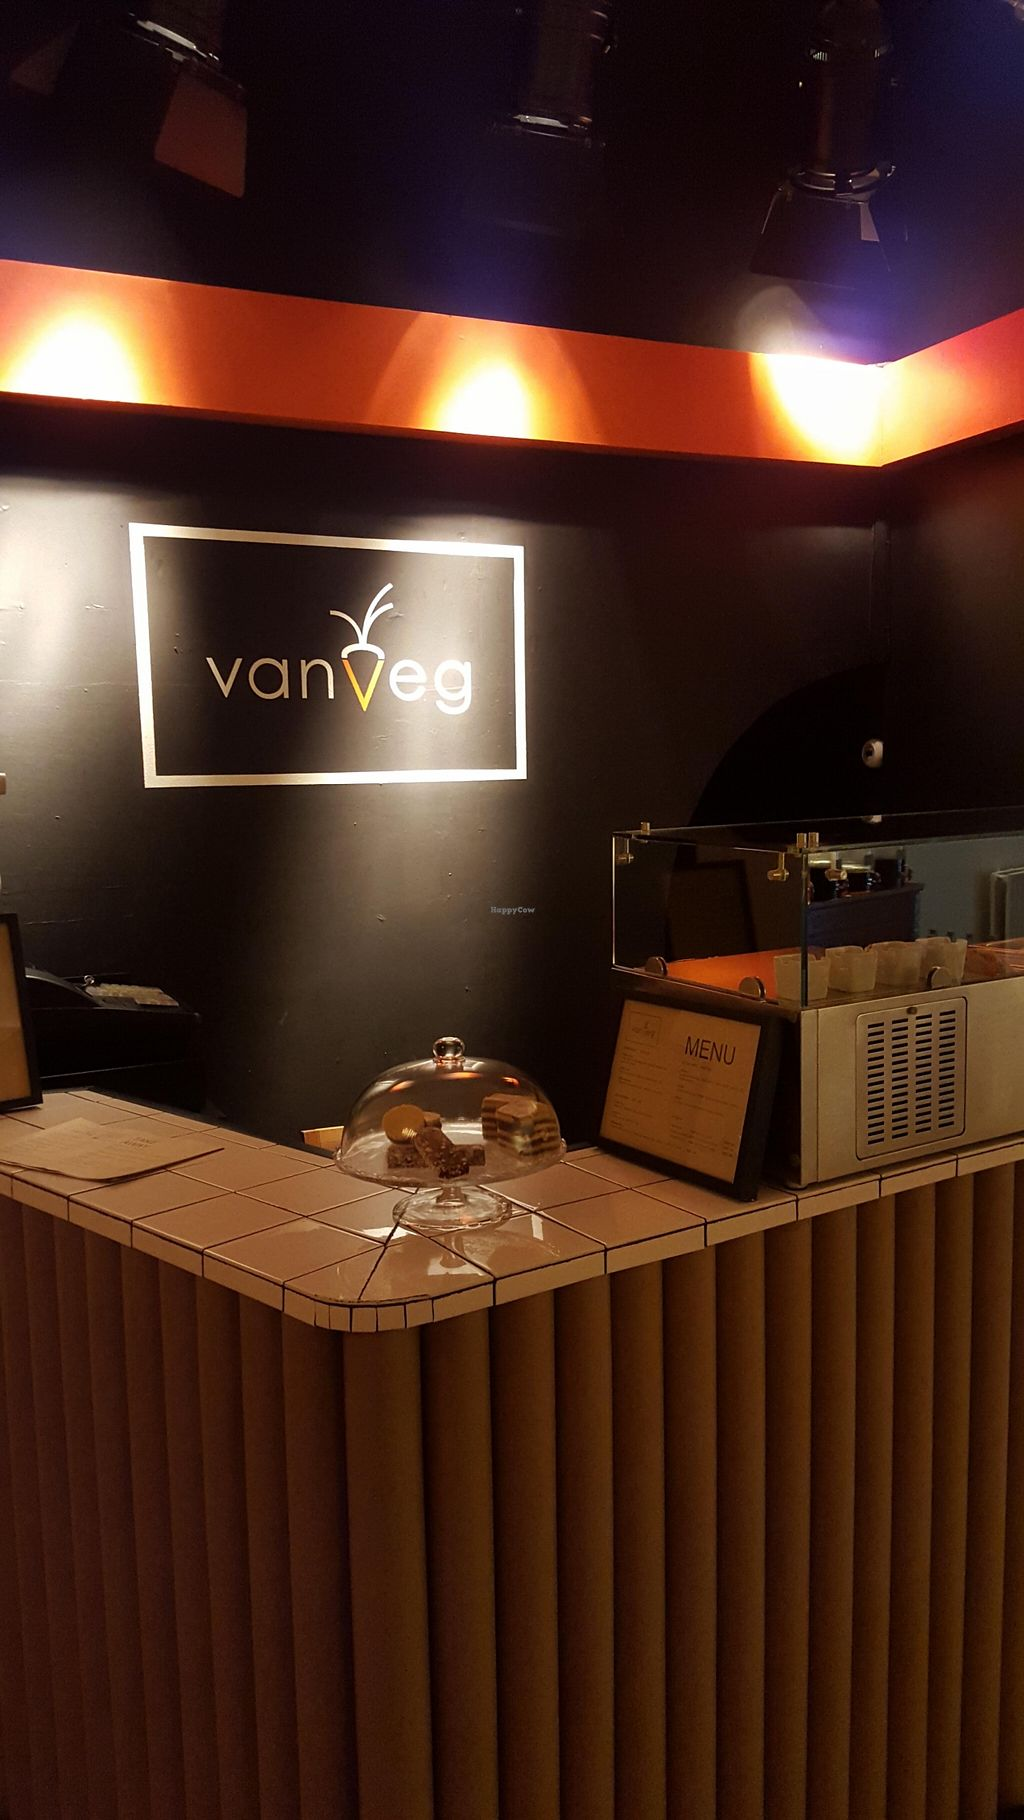 """Photo of vanVeg  by <a href=""""/members/profile/vanVeg"""">vanVeg</a> <br/>Interior <br/> December 19, 2015  - <a href='/contact/abuse/image/67270/129079'>Report</a>"""